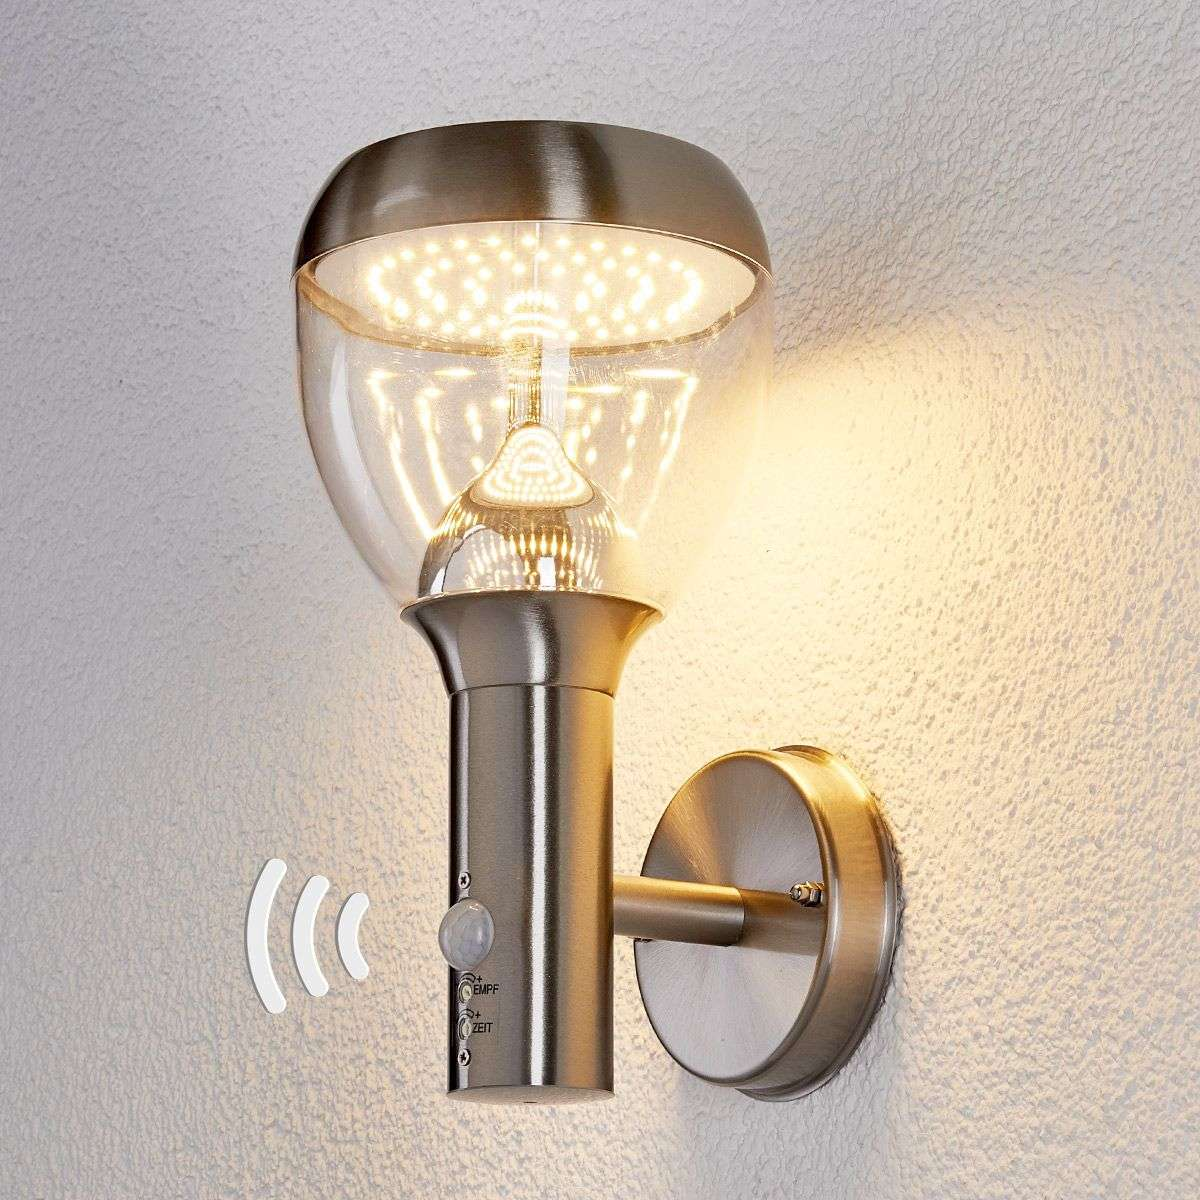 Outside Wall Lights With Sensor : Etta stainless steel sensor outdoor wall light,LED Lights.co.uk